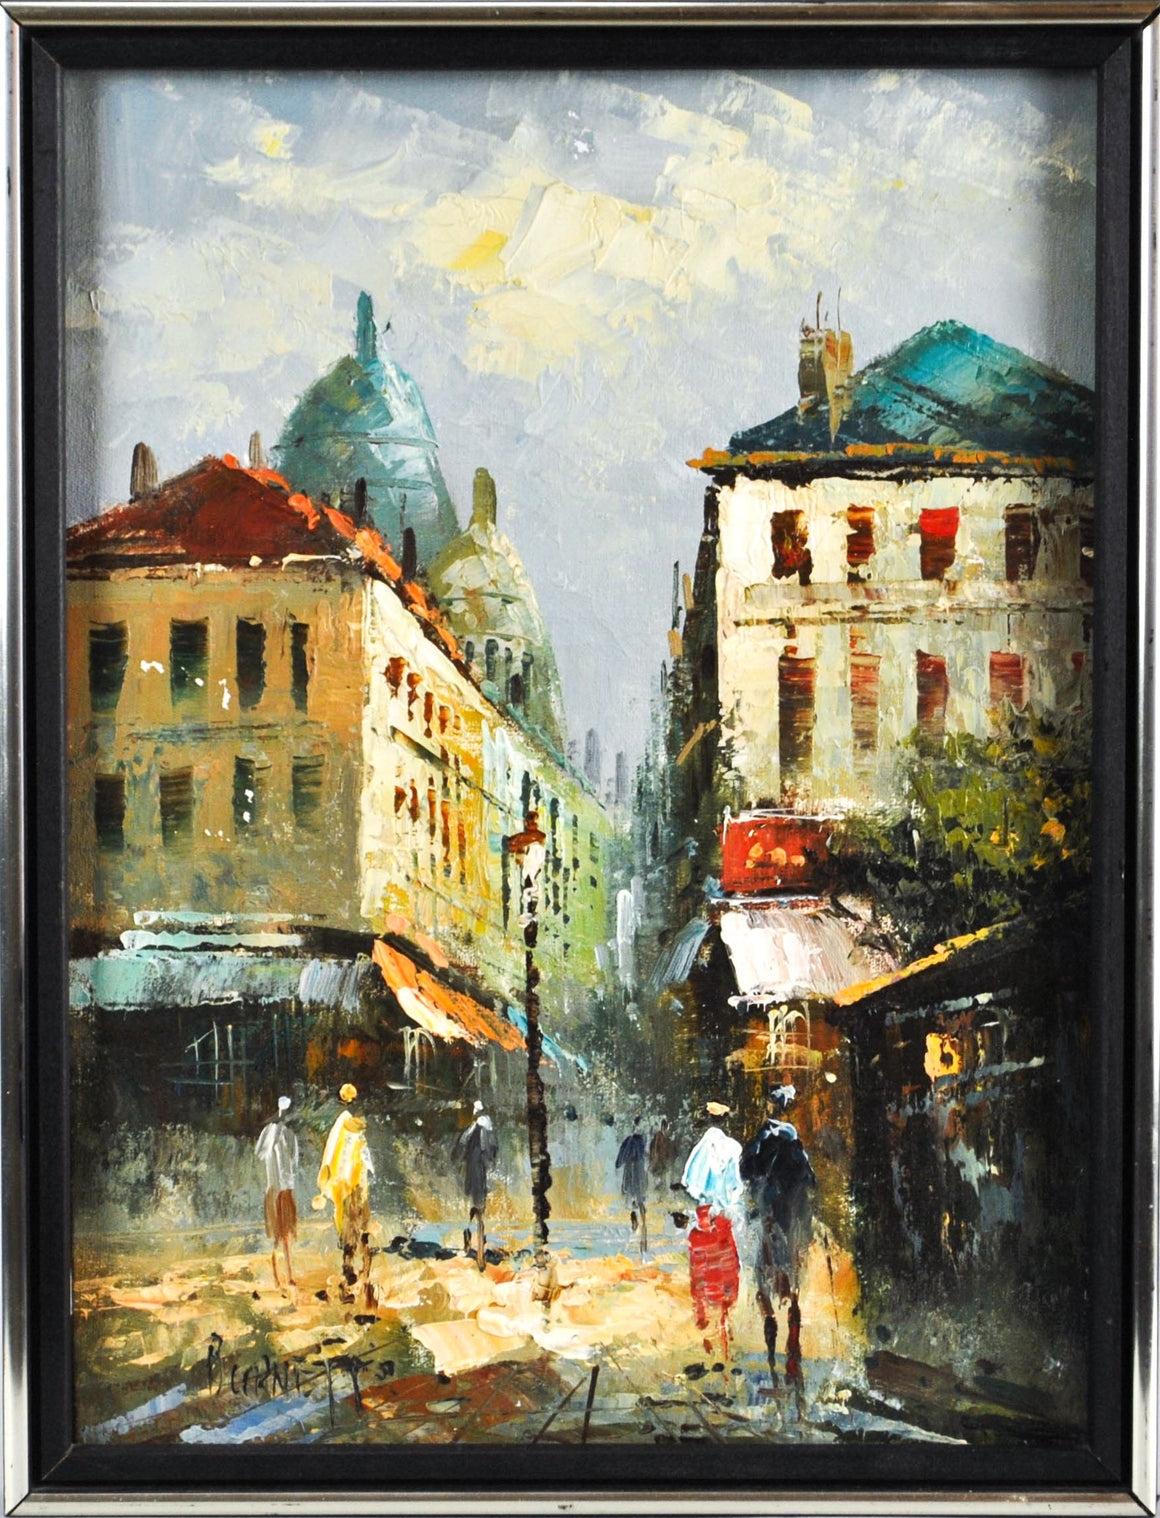 Caroline Burnett - Paris Street Scene - Oil Painting